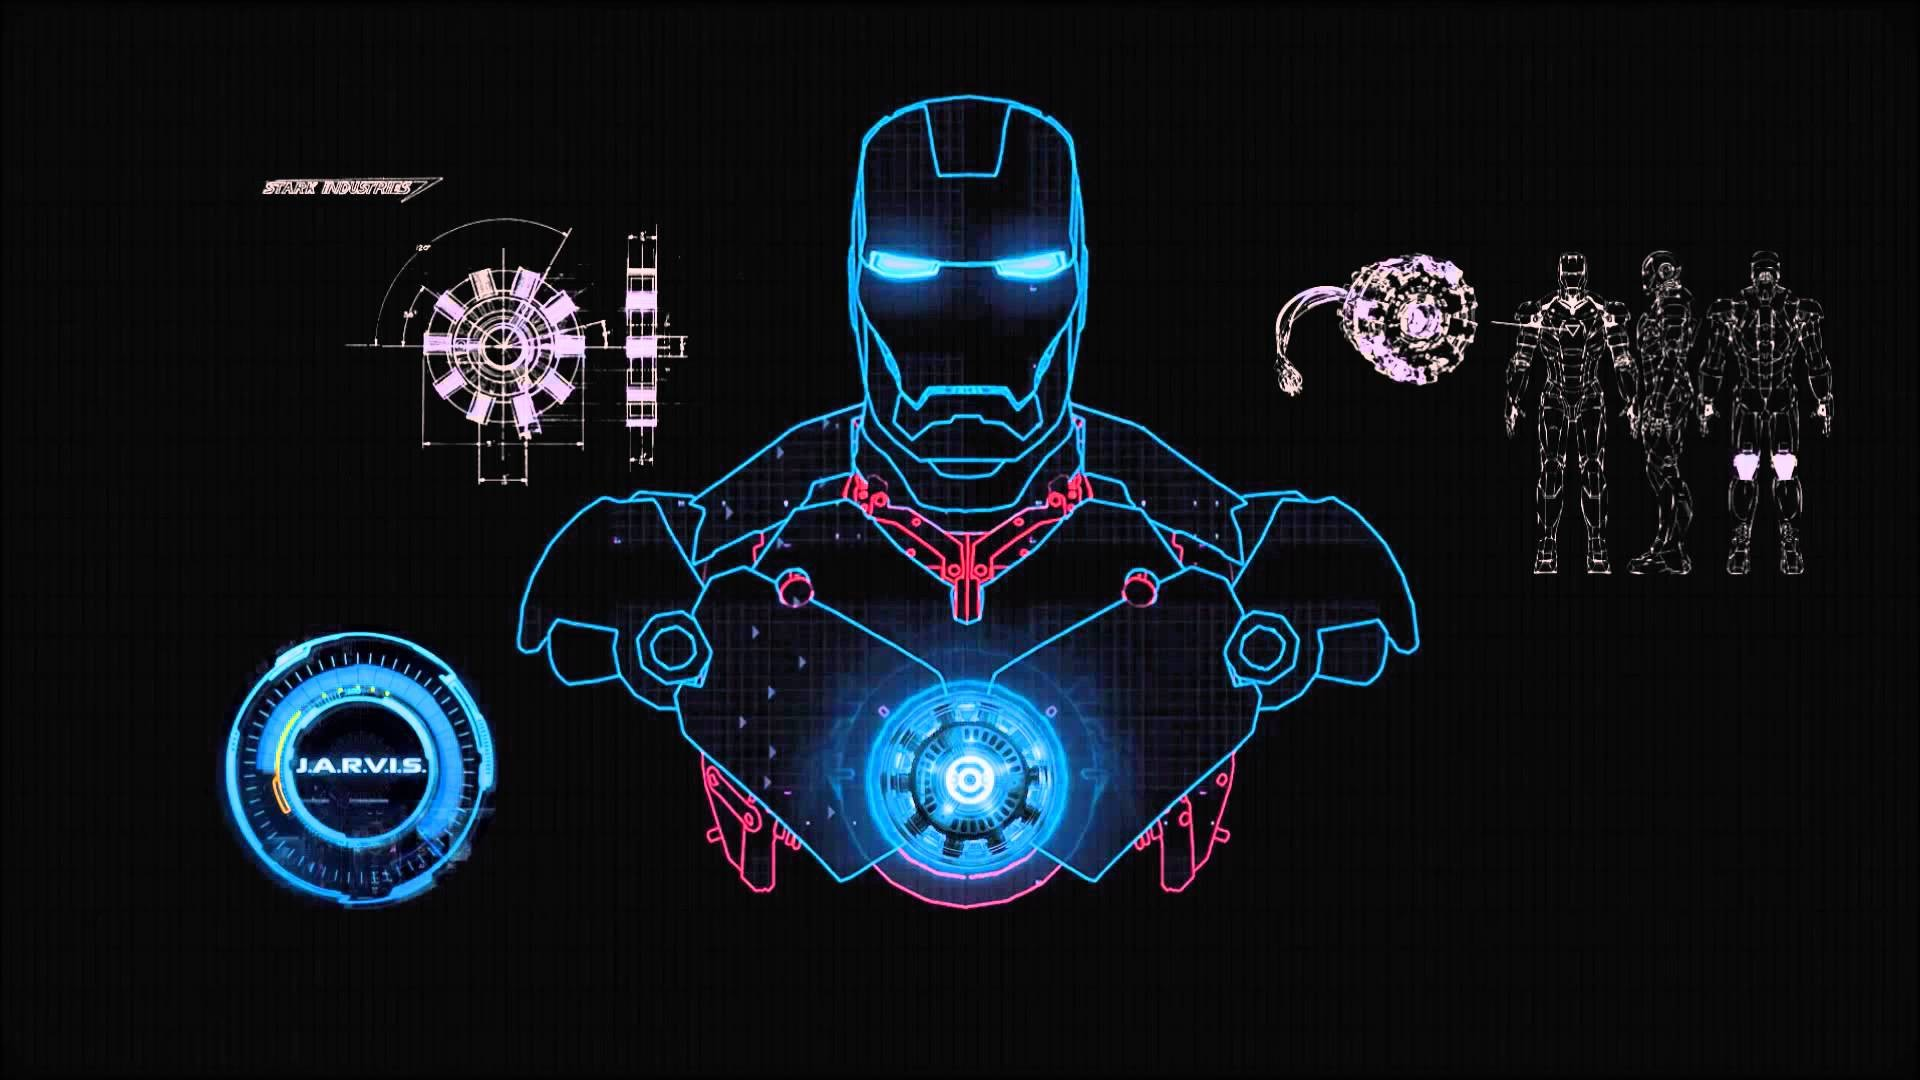 Iron man jarvis wallpaper hd 72 images 1920x1107 ironman jarvis theme version 2 by scrollsofaryavart on deviantart publicscrutiny Gallery